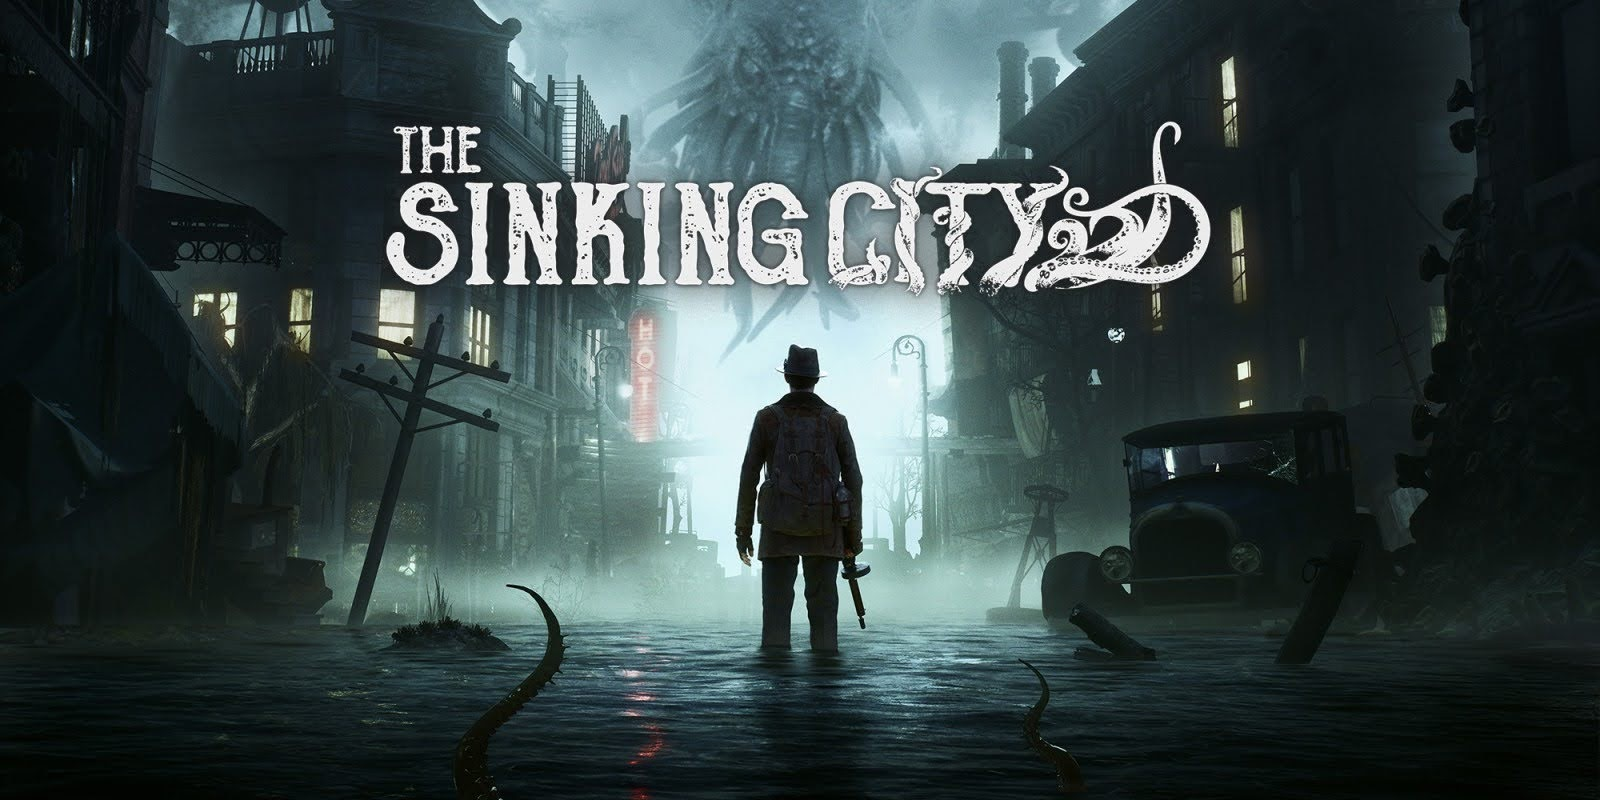 What is happening with The Sinking City